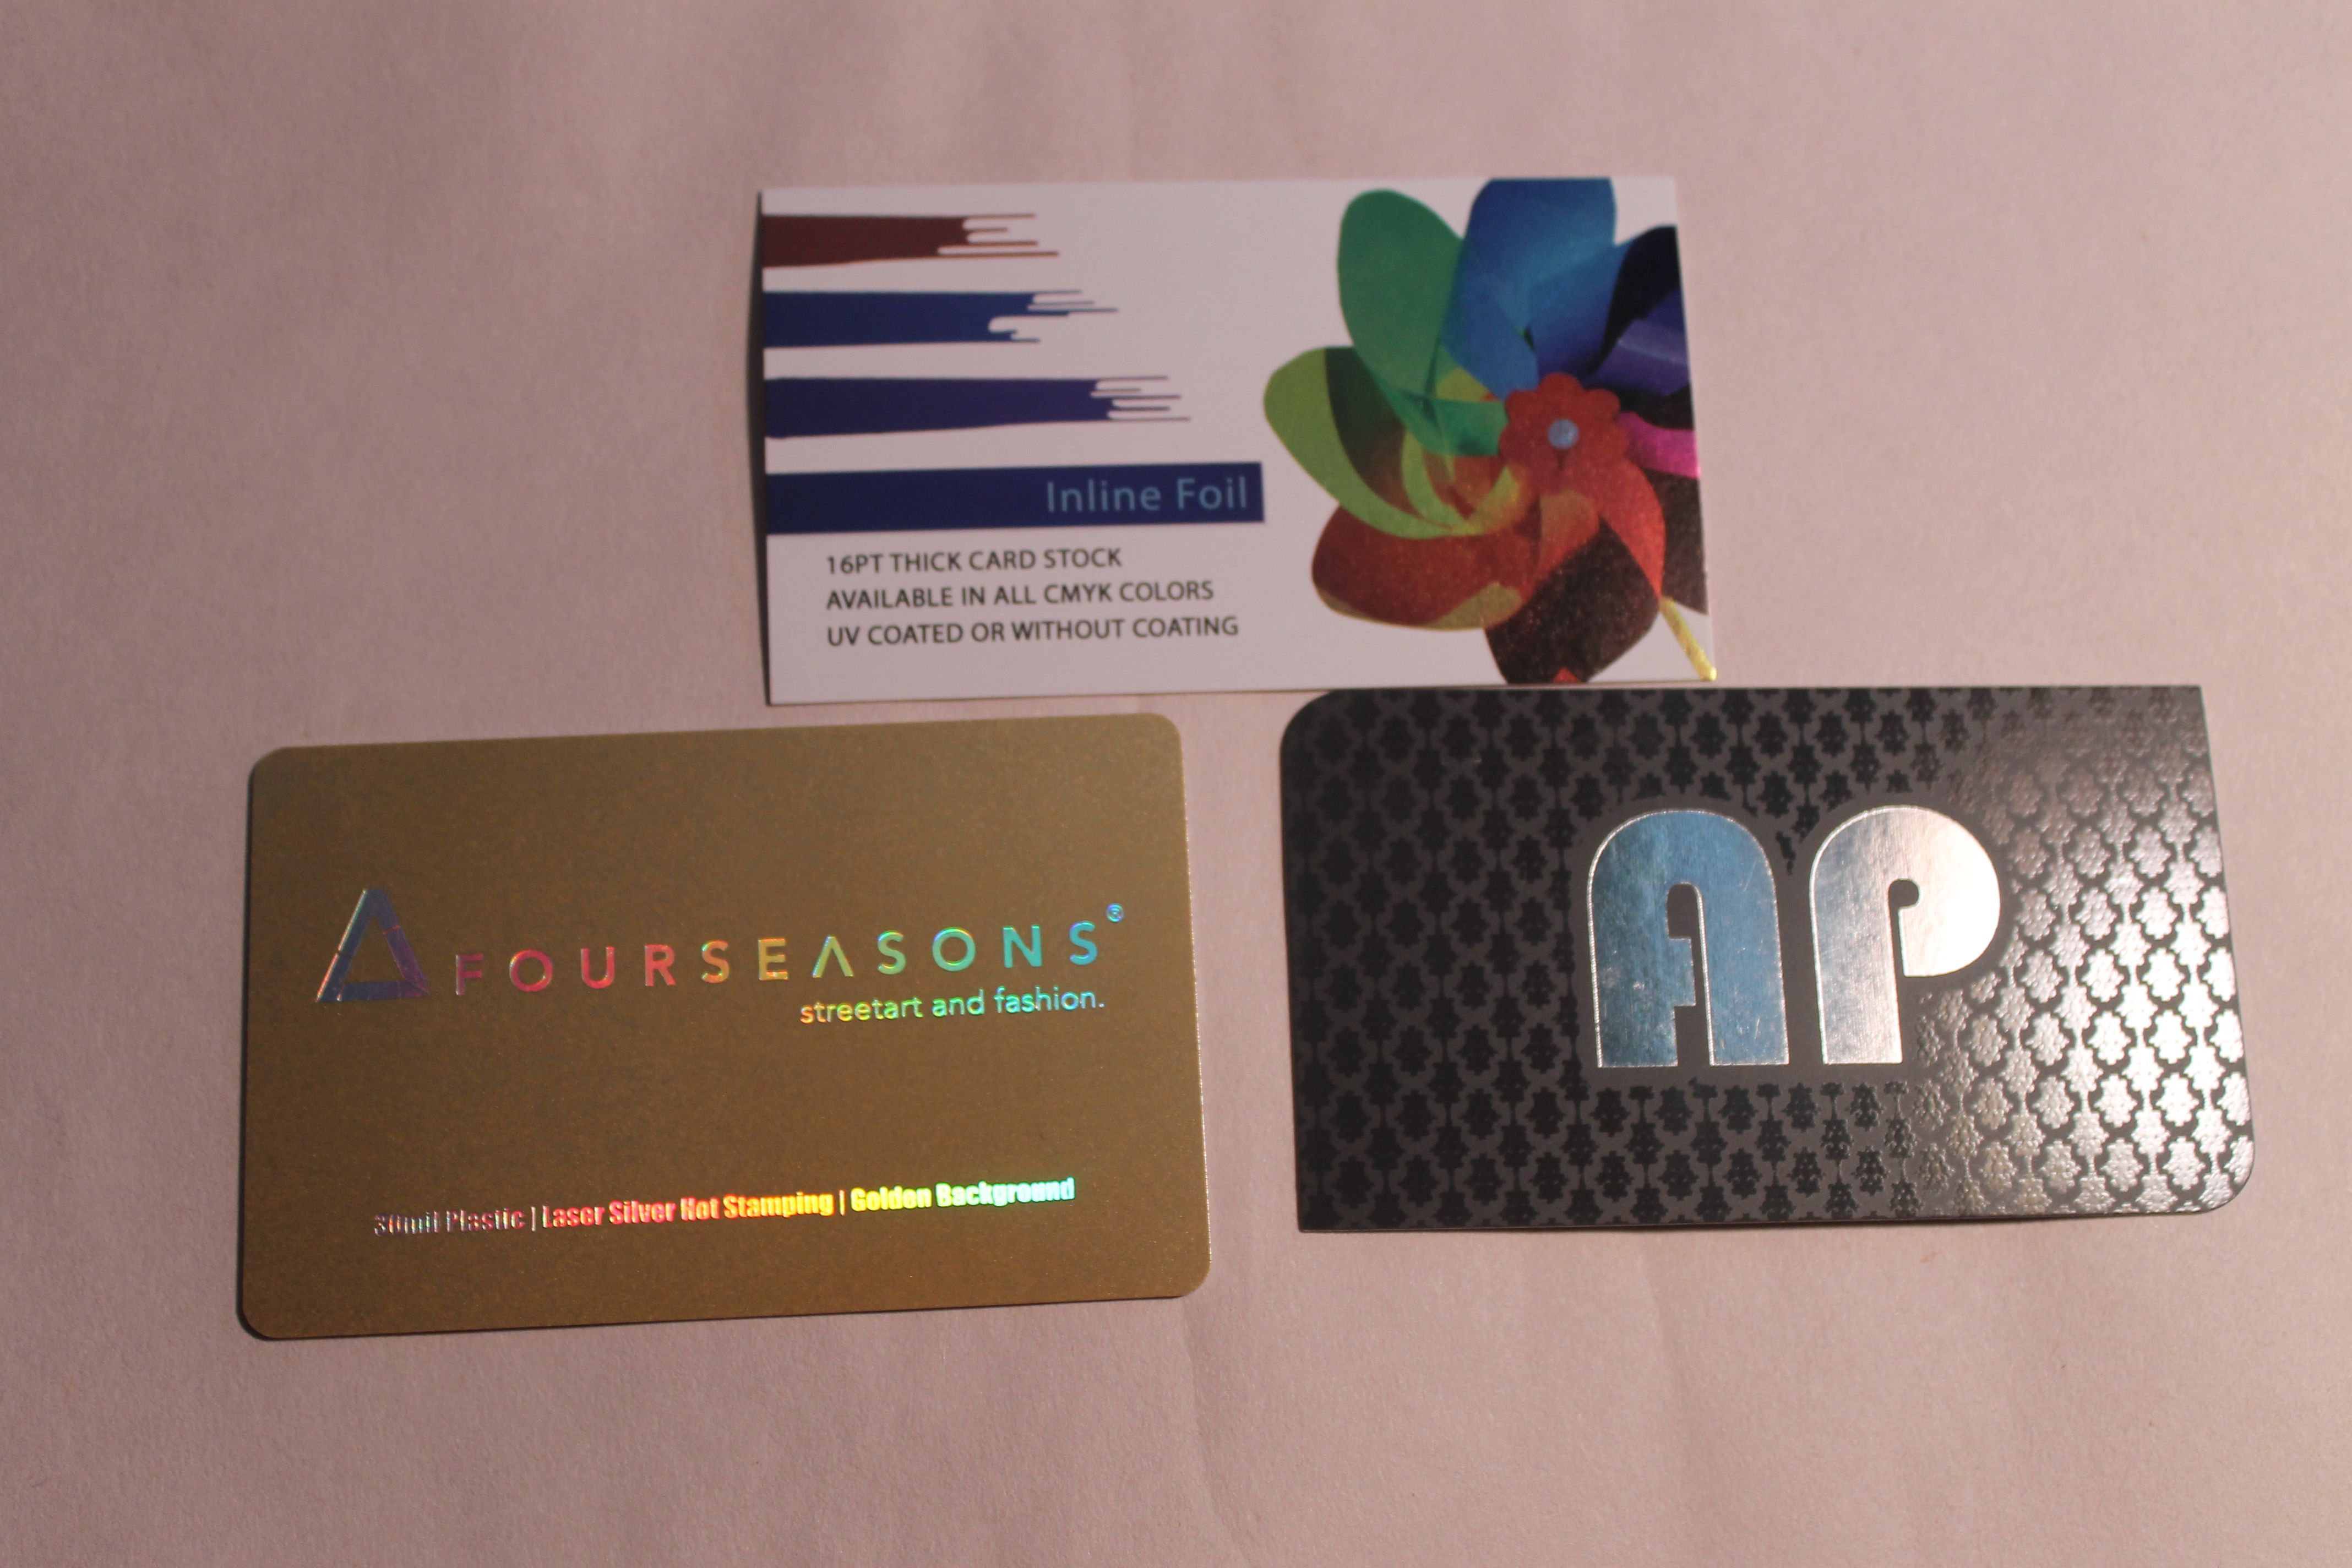 3 different paper stocks with foil stamping 1 16 pt thick card